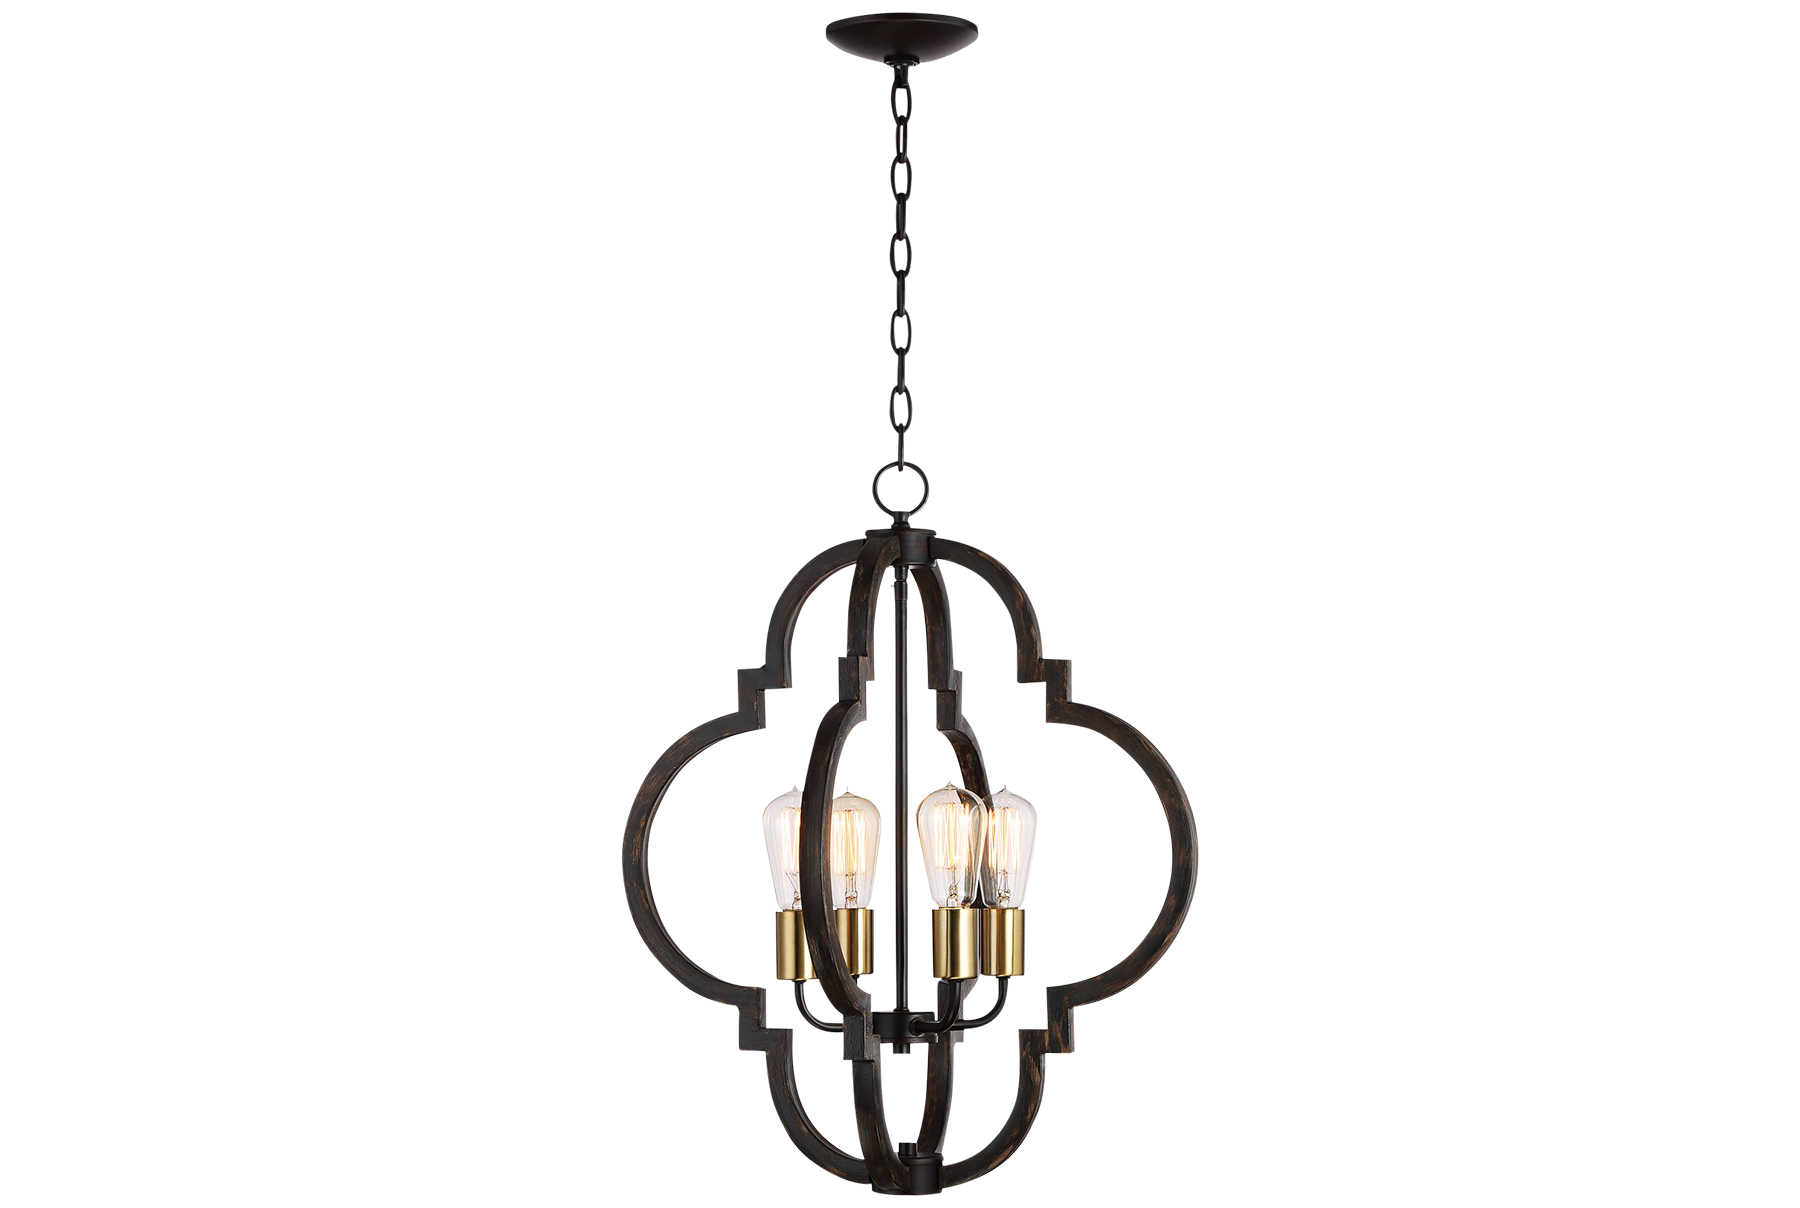 Ayoura Wood-Grain 4-Light Pendant Chandelier